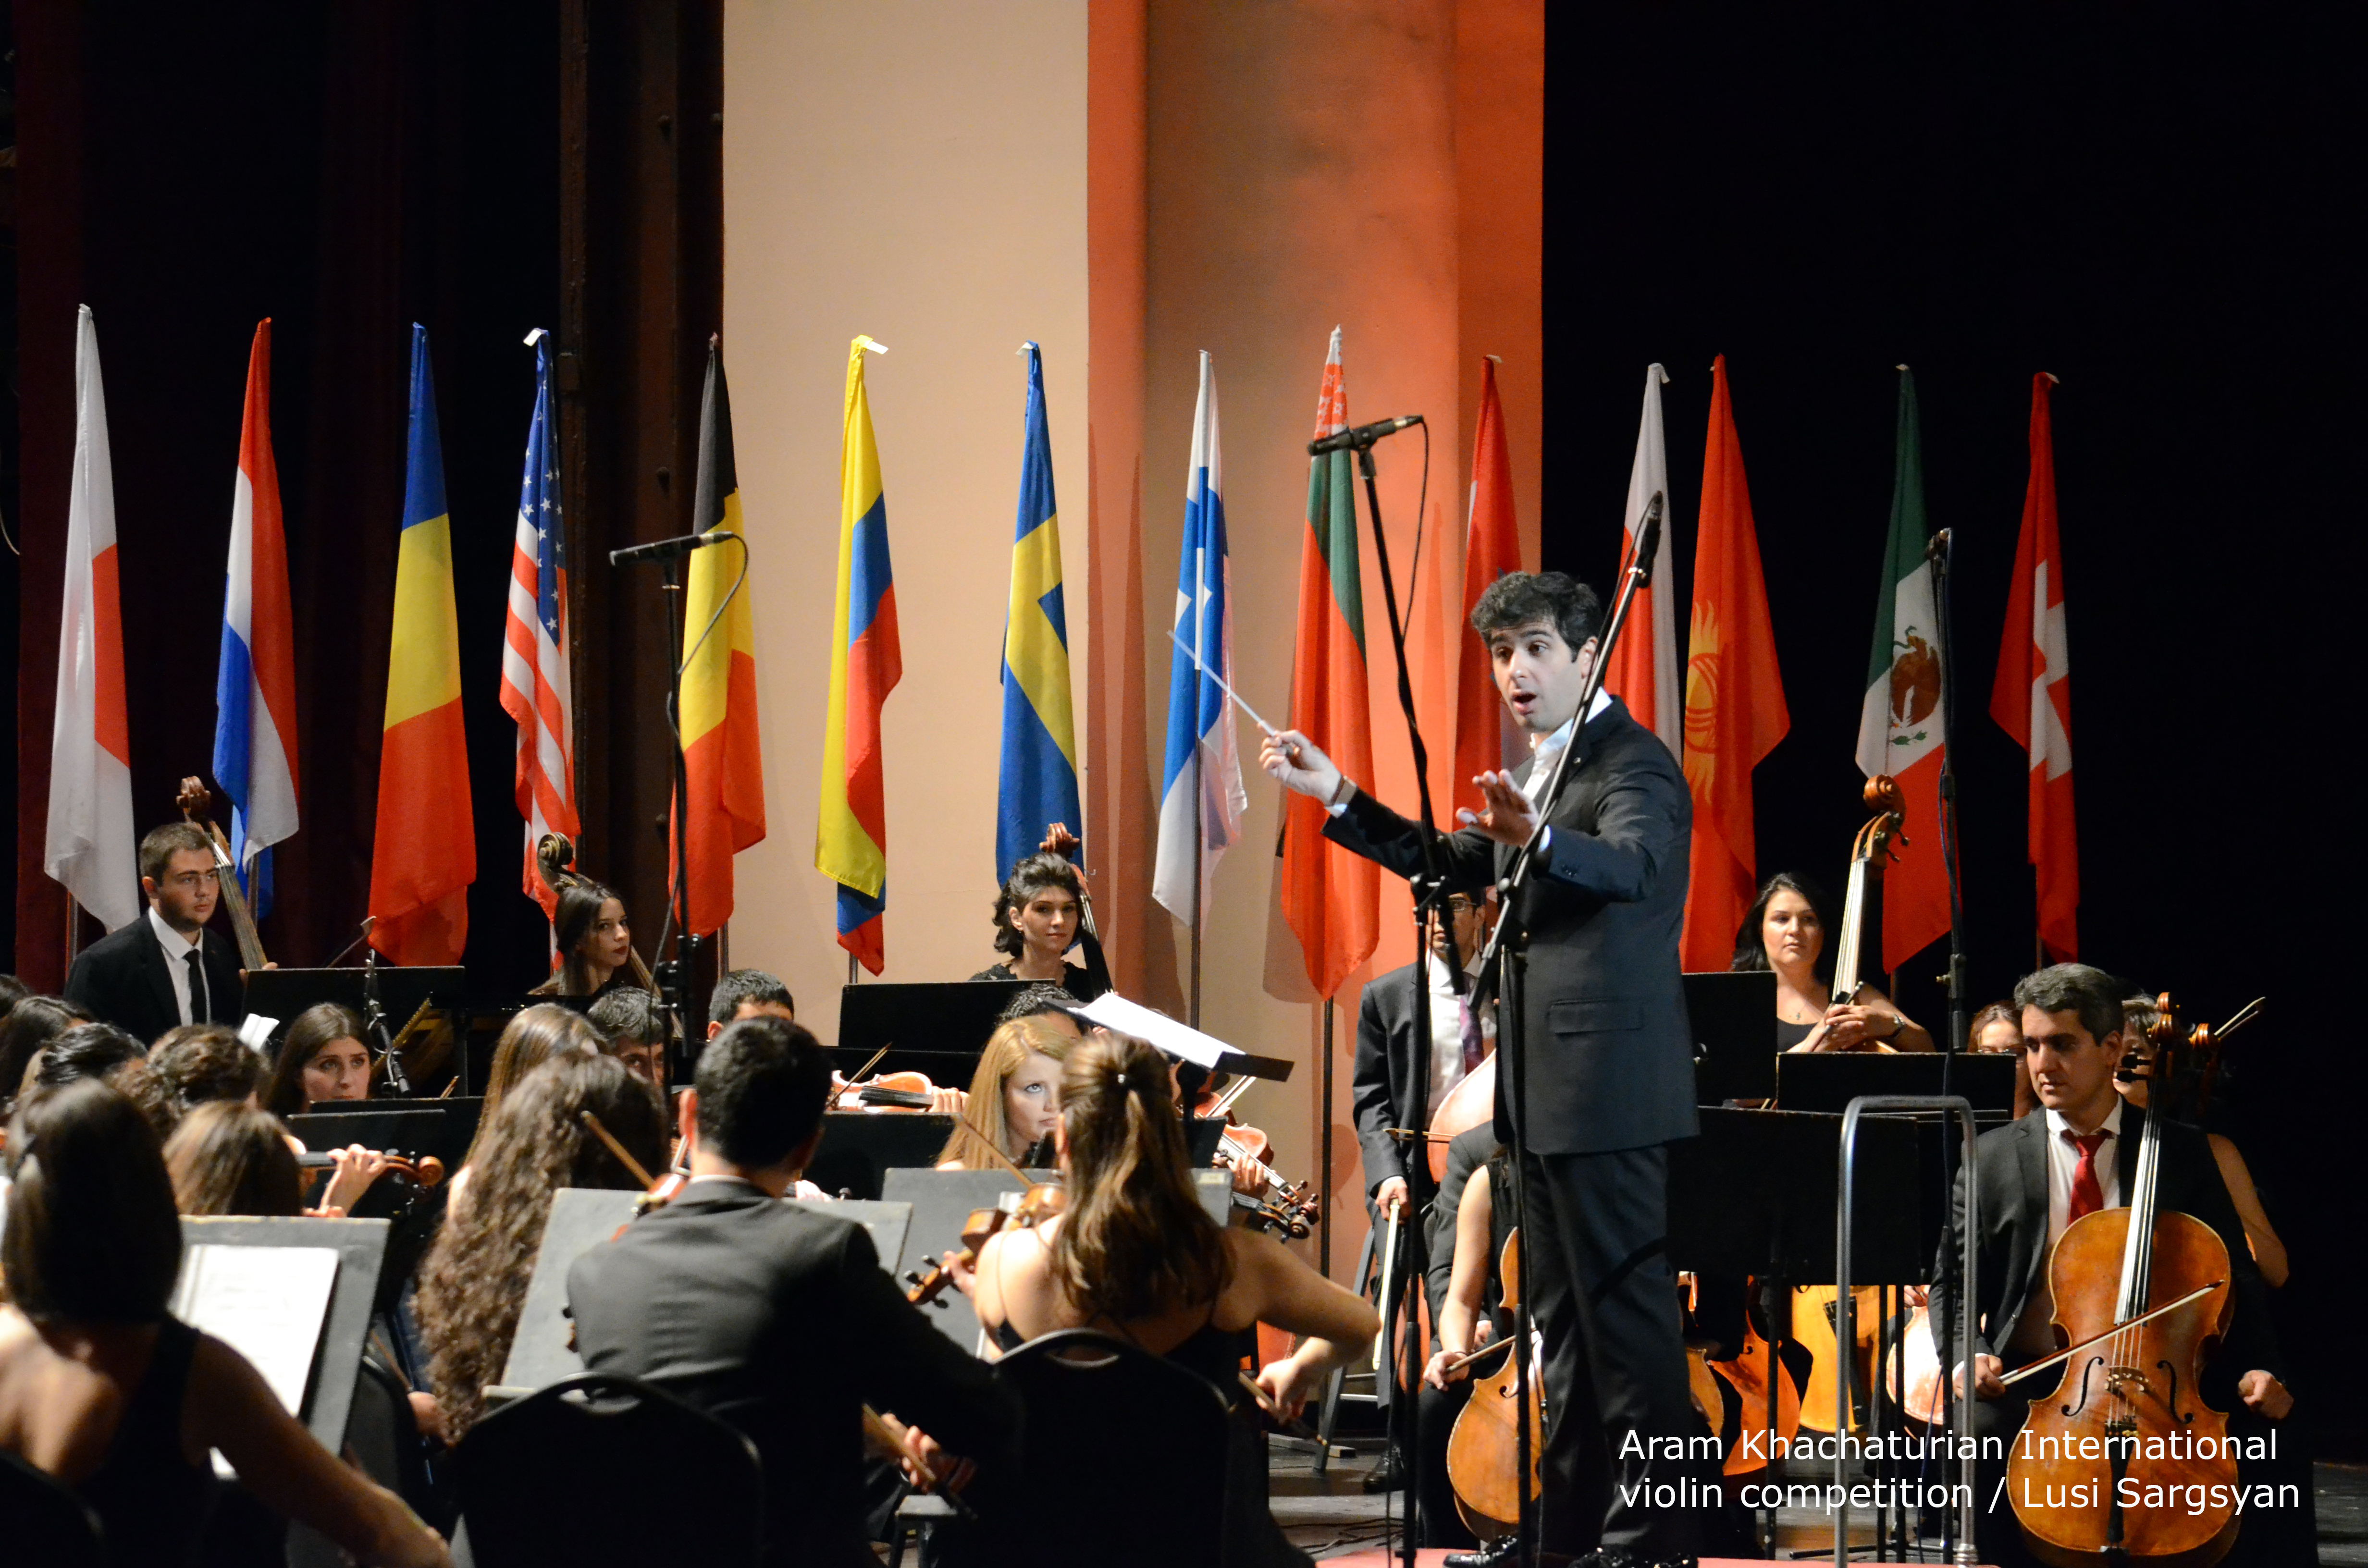 Khachaturian Competition 2015